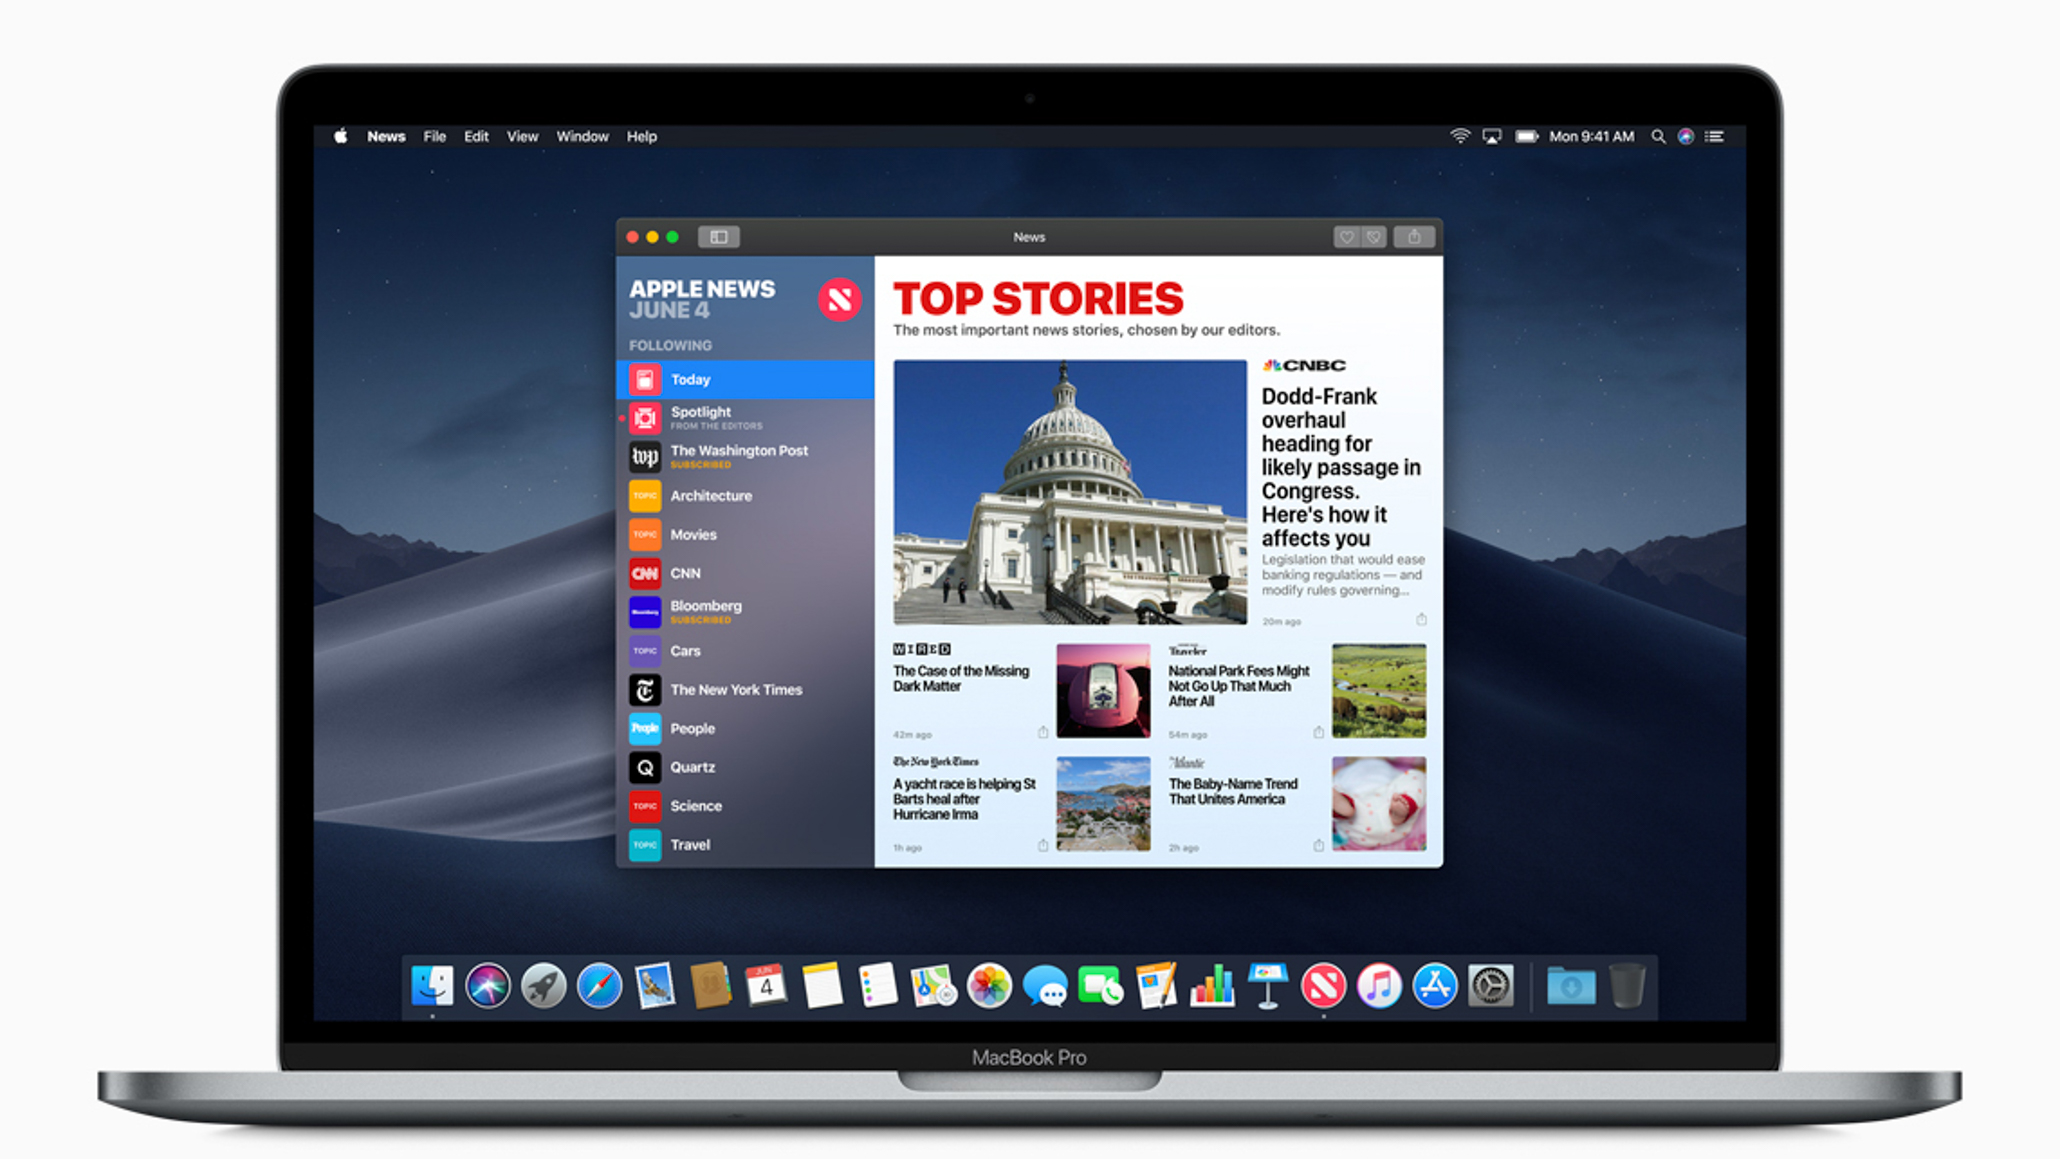 As part of Apple's ongoing effort to blur the distinctions between iOS and macOS, the iOS apps News, Stocks, and Voice memos also arrive on the Mac with Mojave. Image: Apple.